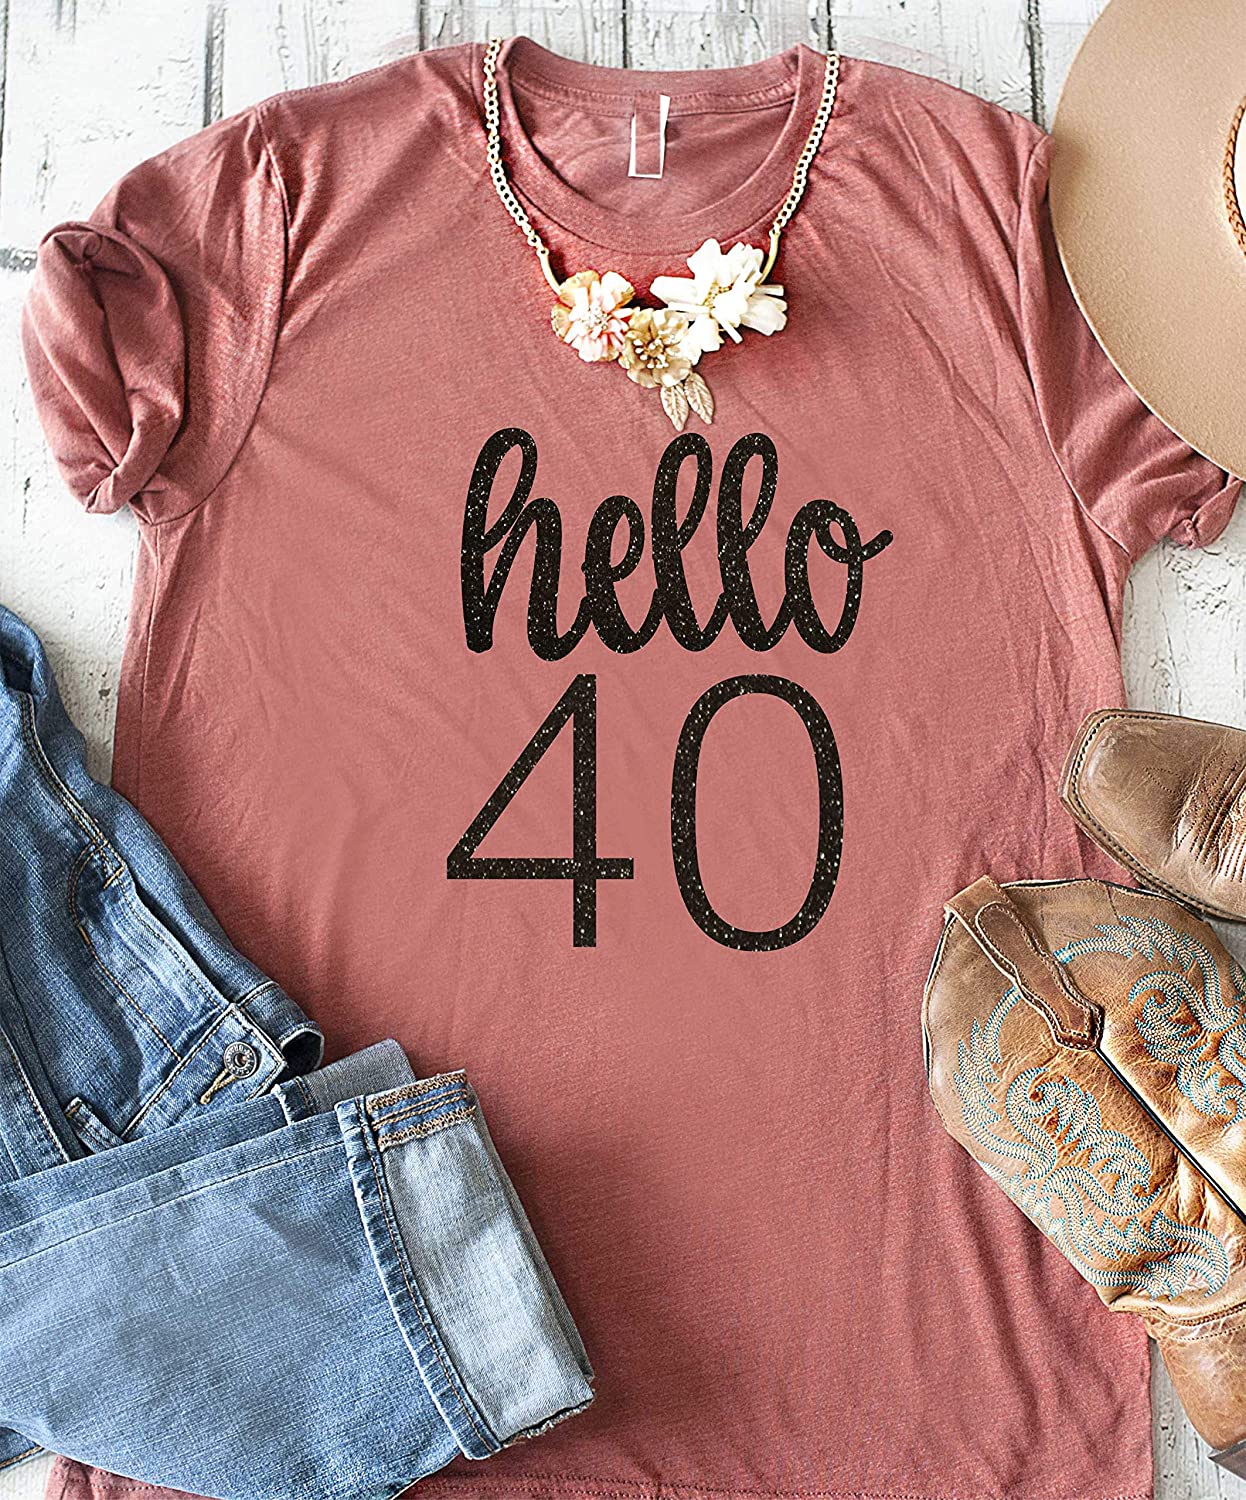 40th birthday shirt for women Cu forty t-shirt Max 67% OFF Oakland Mall ladies